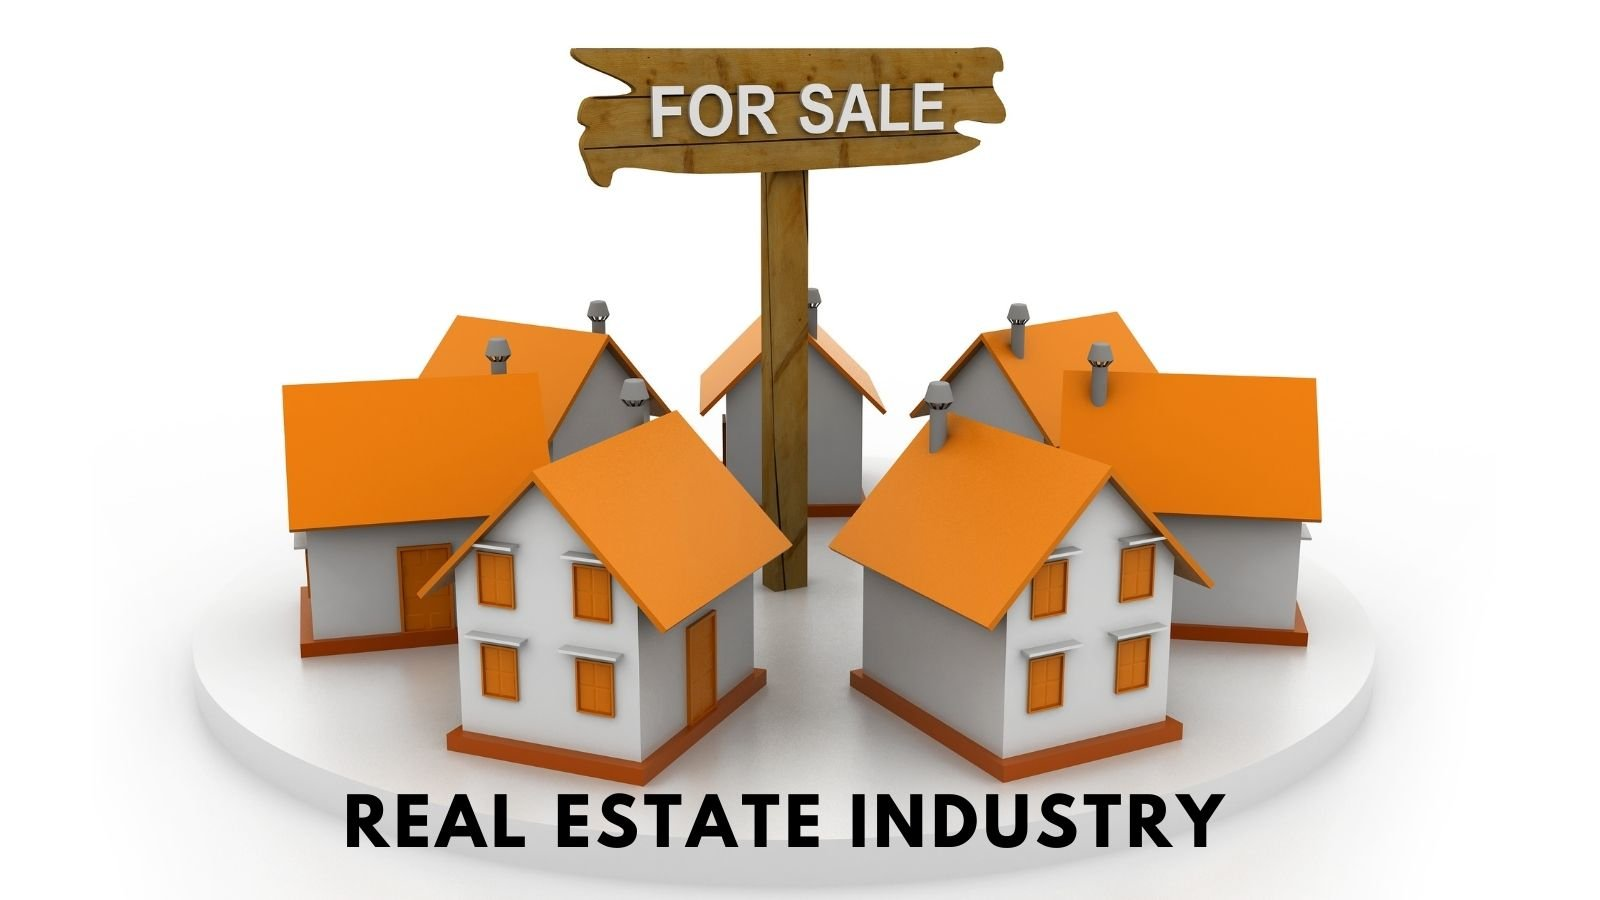 real estate industries to consider